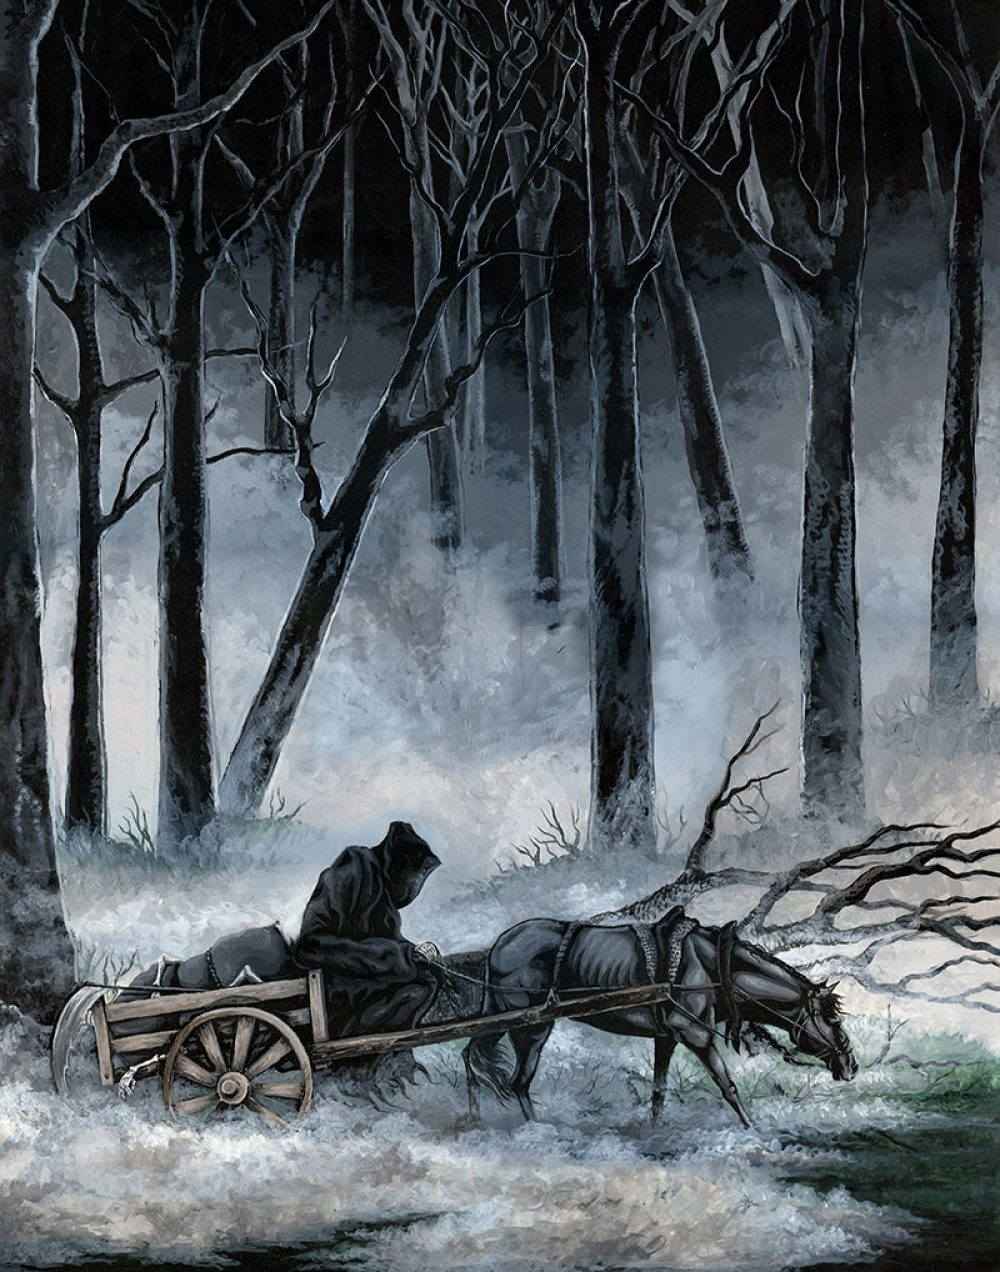 Painting of a grim reaper collecting bones with his horse and cart by Rebecca Magar